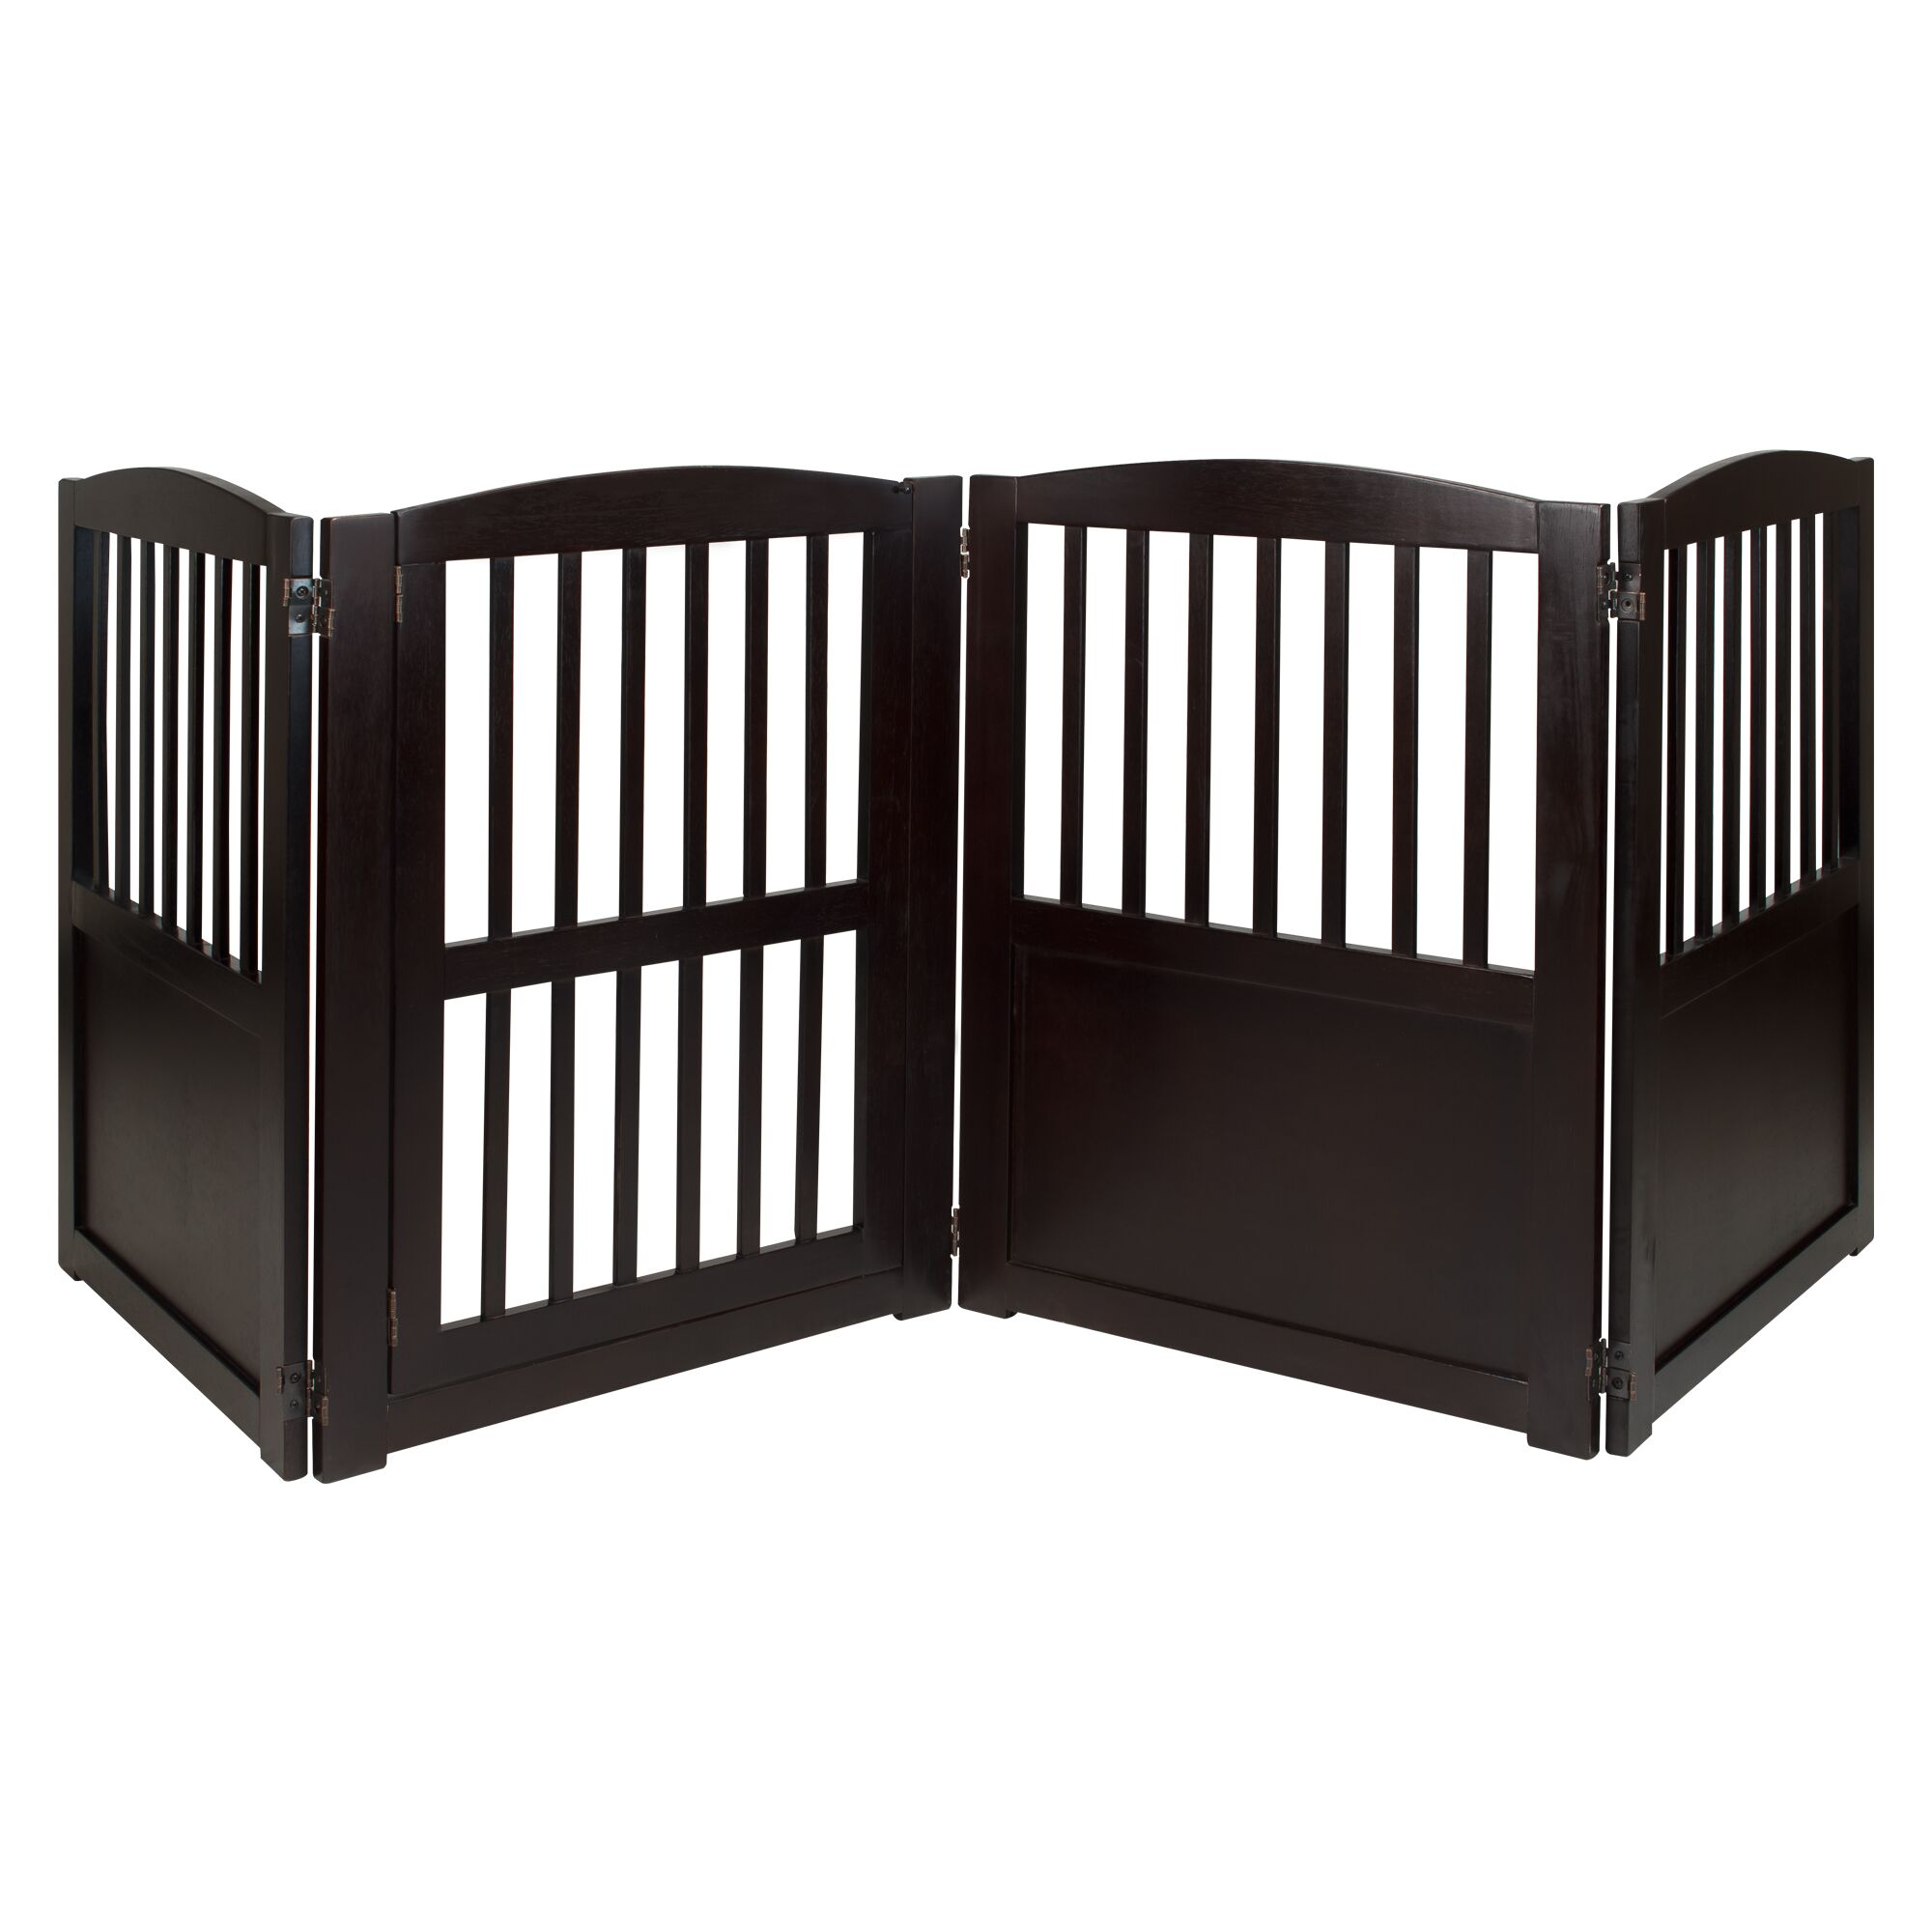 Jester Convertible Pet Gate